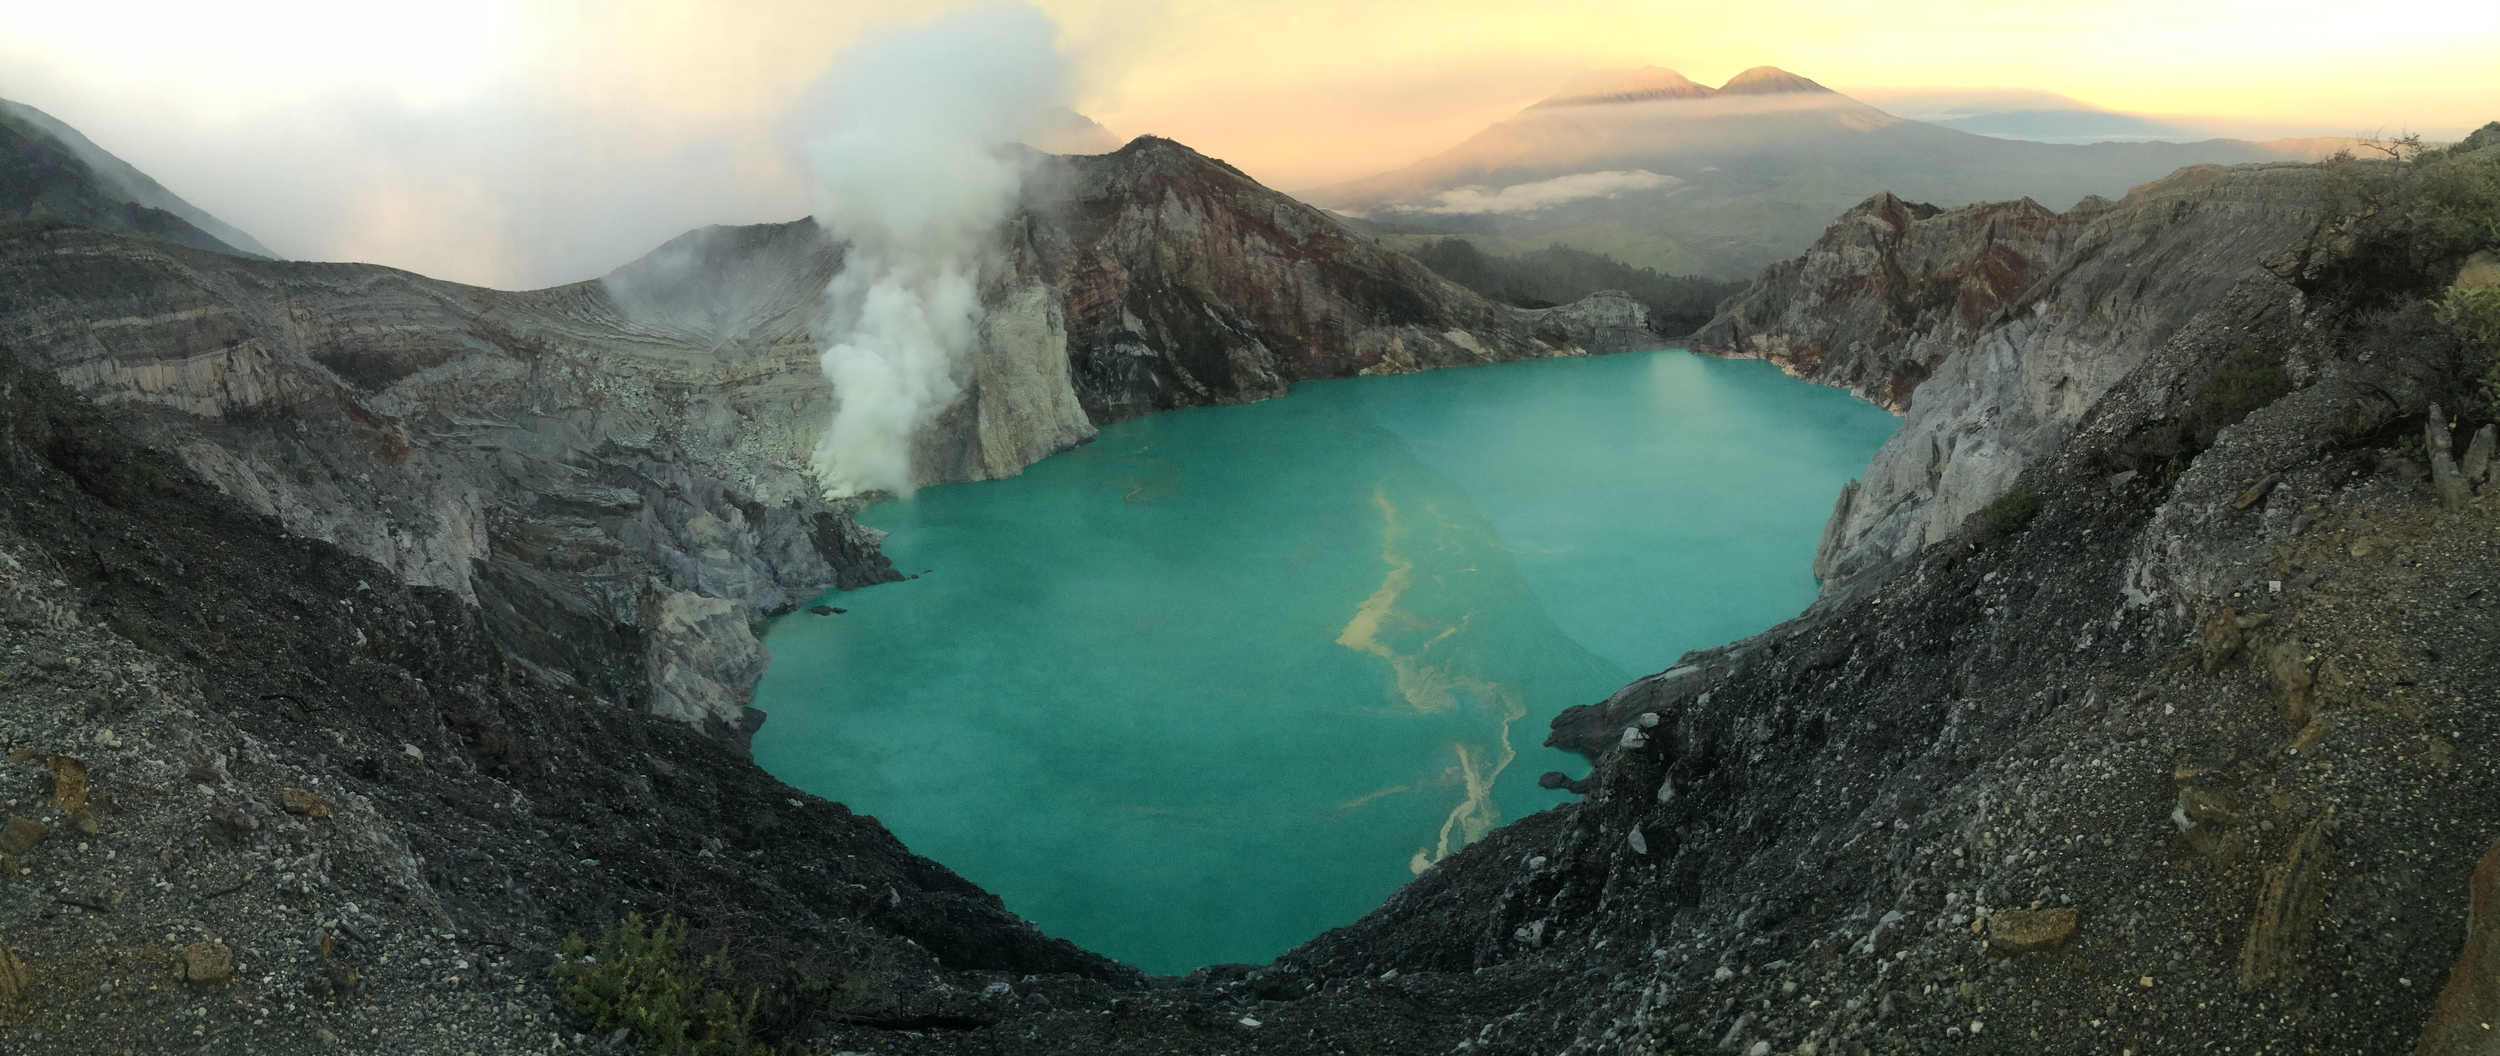 You can notice the sulfur mine from the smoke on the left side of the lake